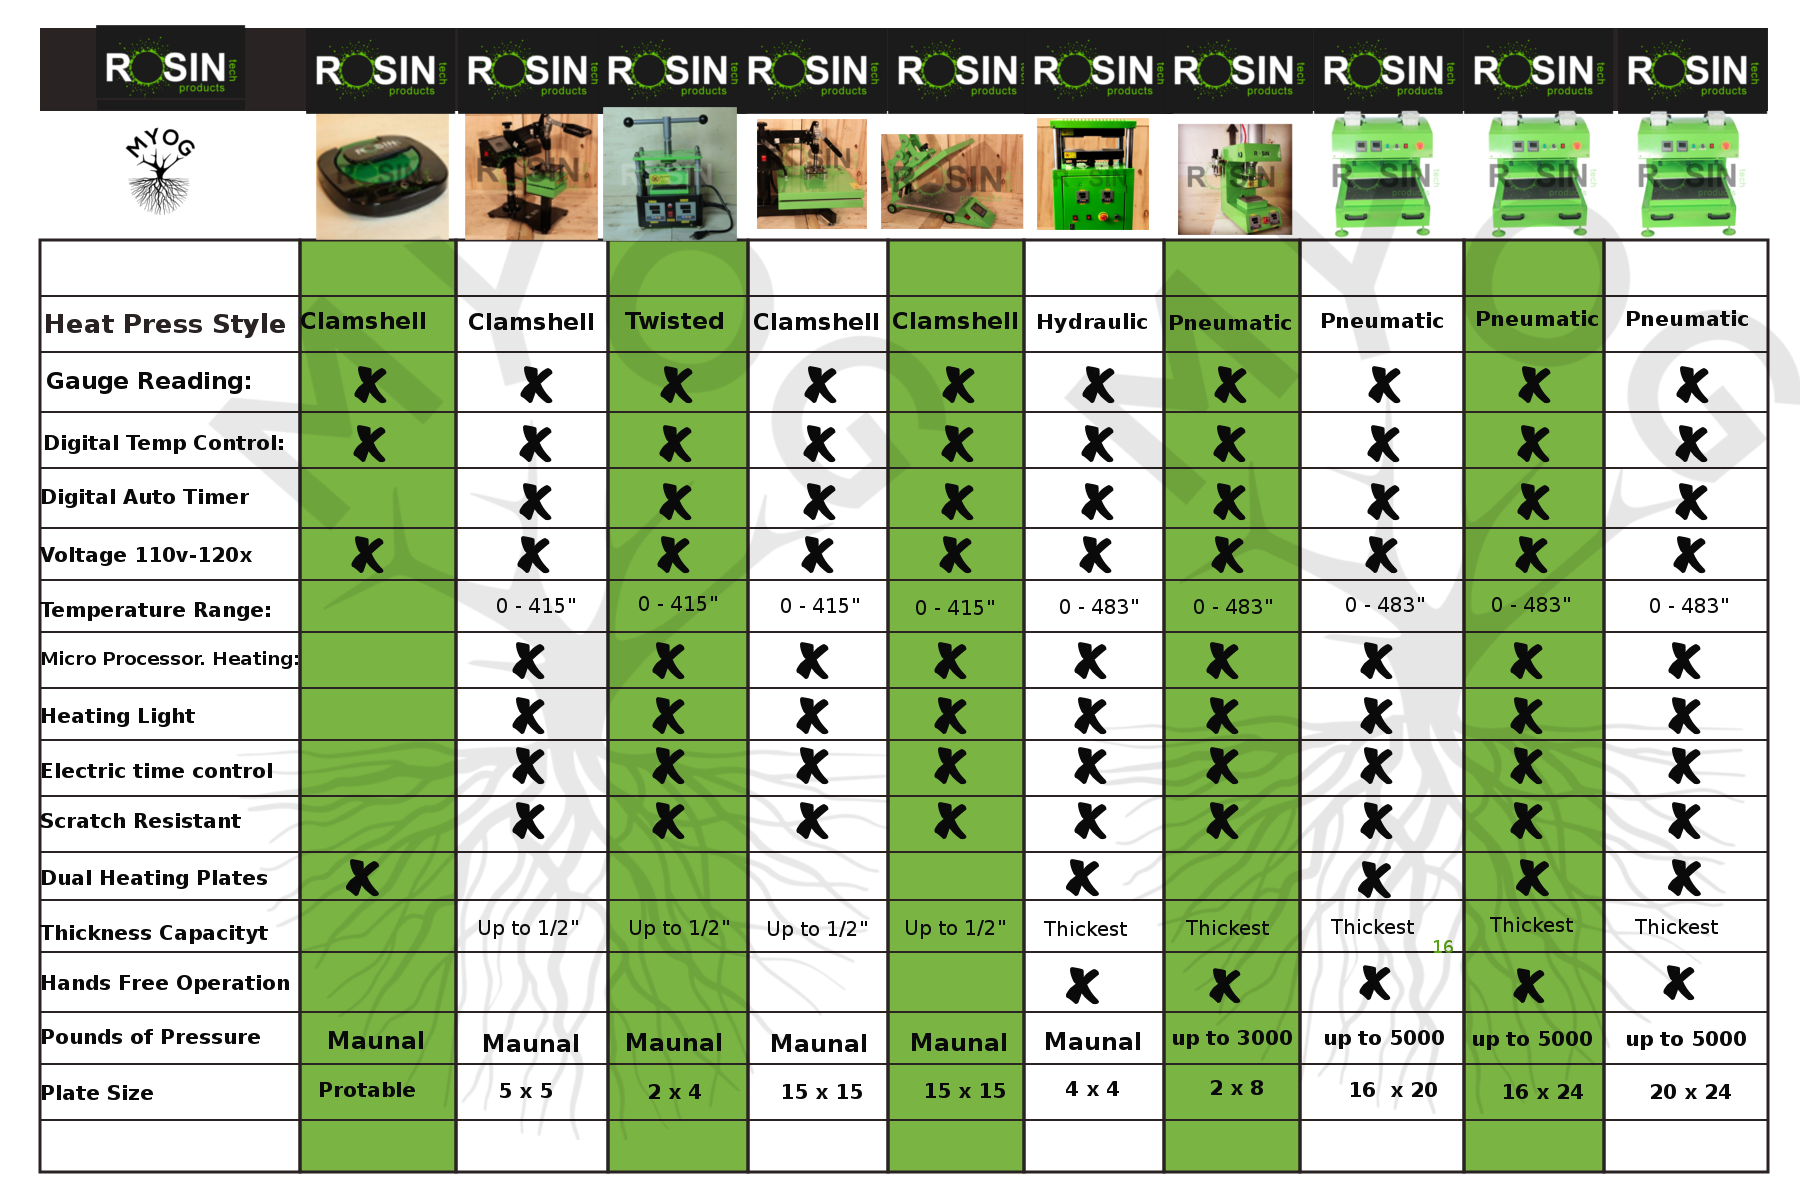 Rosin Tech Products comparison chart!   Product Charts   Pinterest